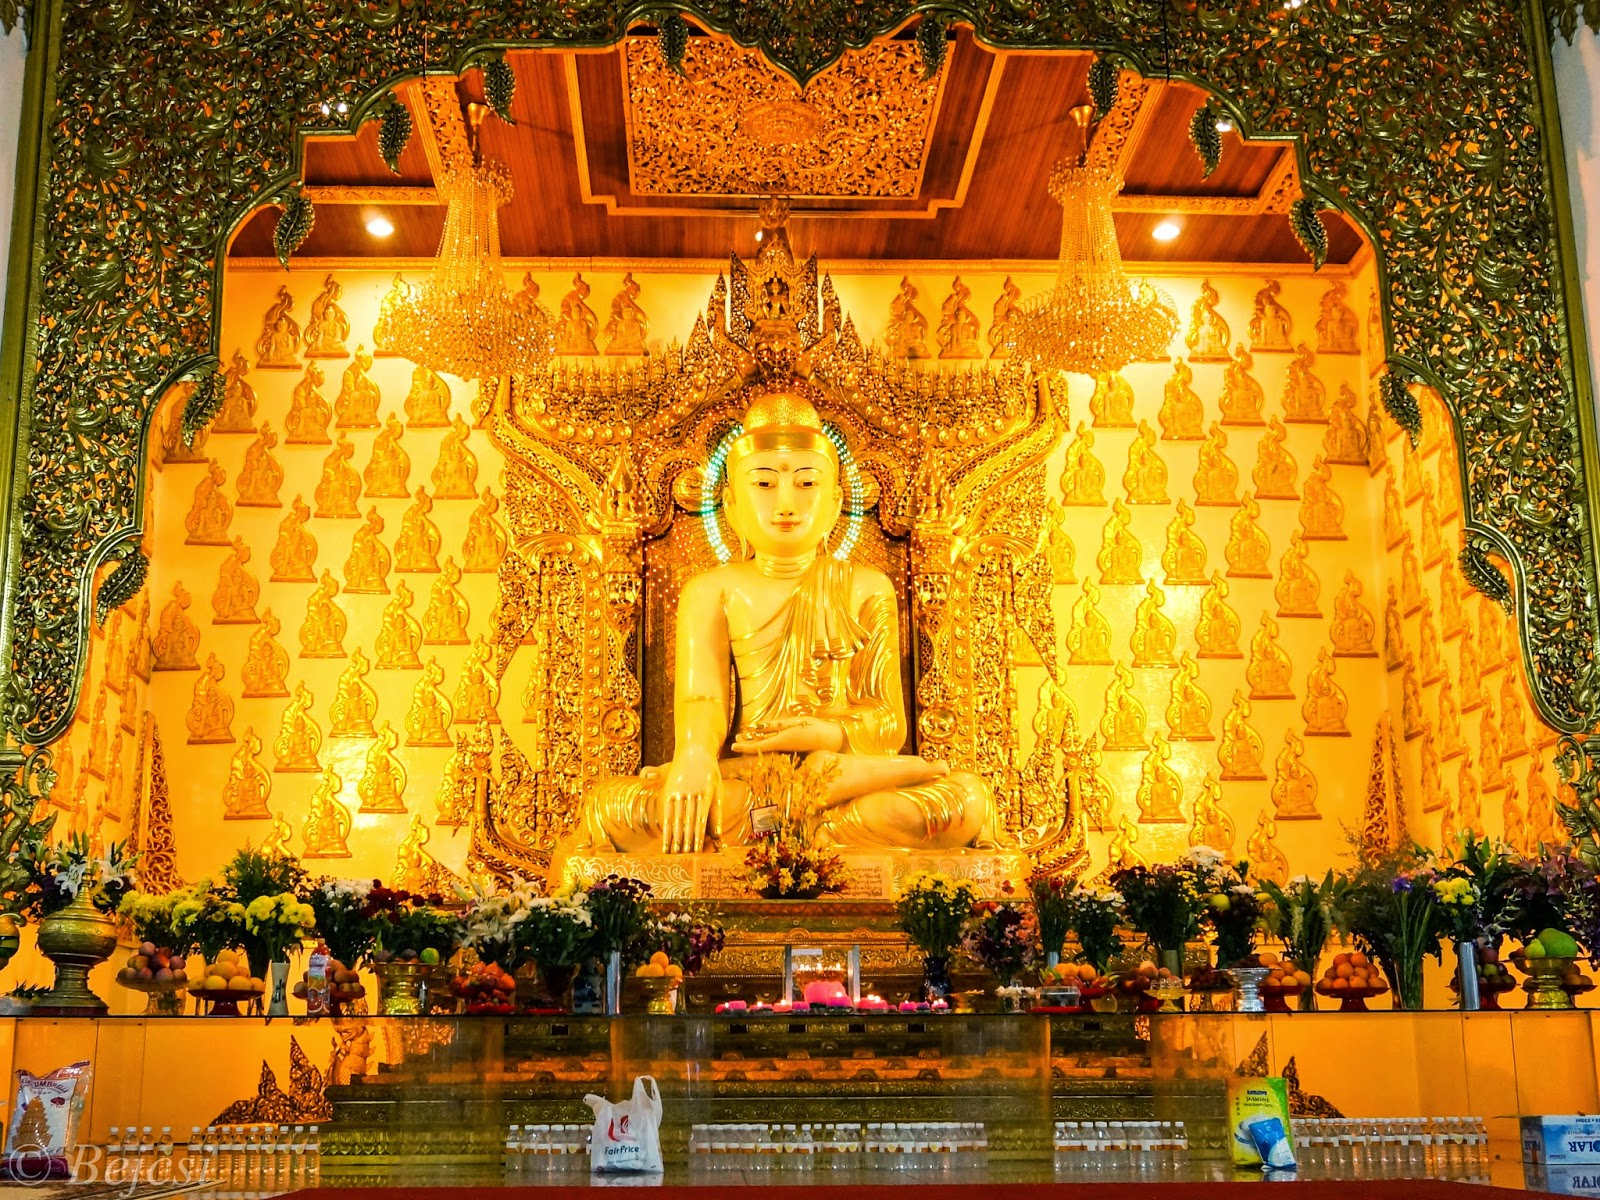 Buddha images and their meaning postures and mudras adventures and here comes my favorite to introduce the abhaya mudra the symbol of peace and no fear tian tan big buddha in hong kong on lantau island buycottarizona